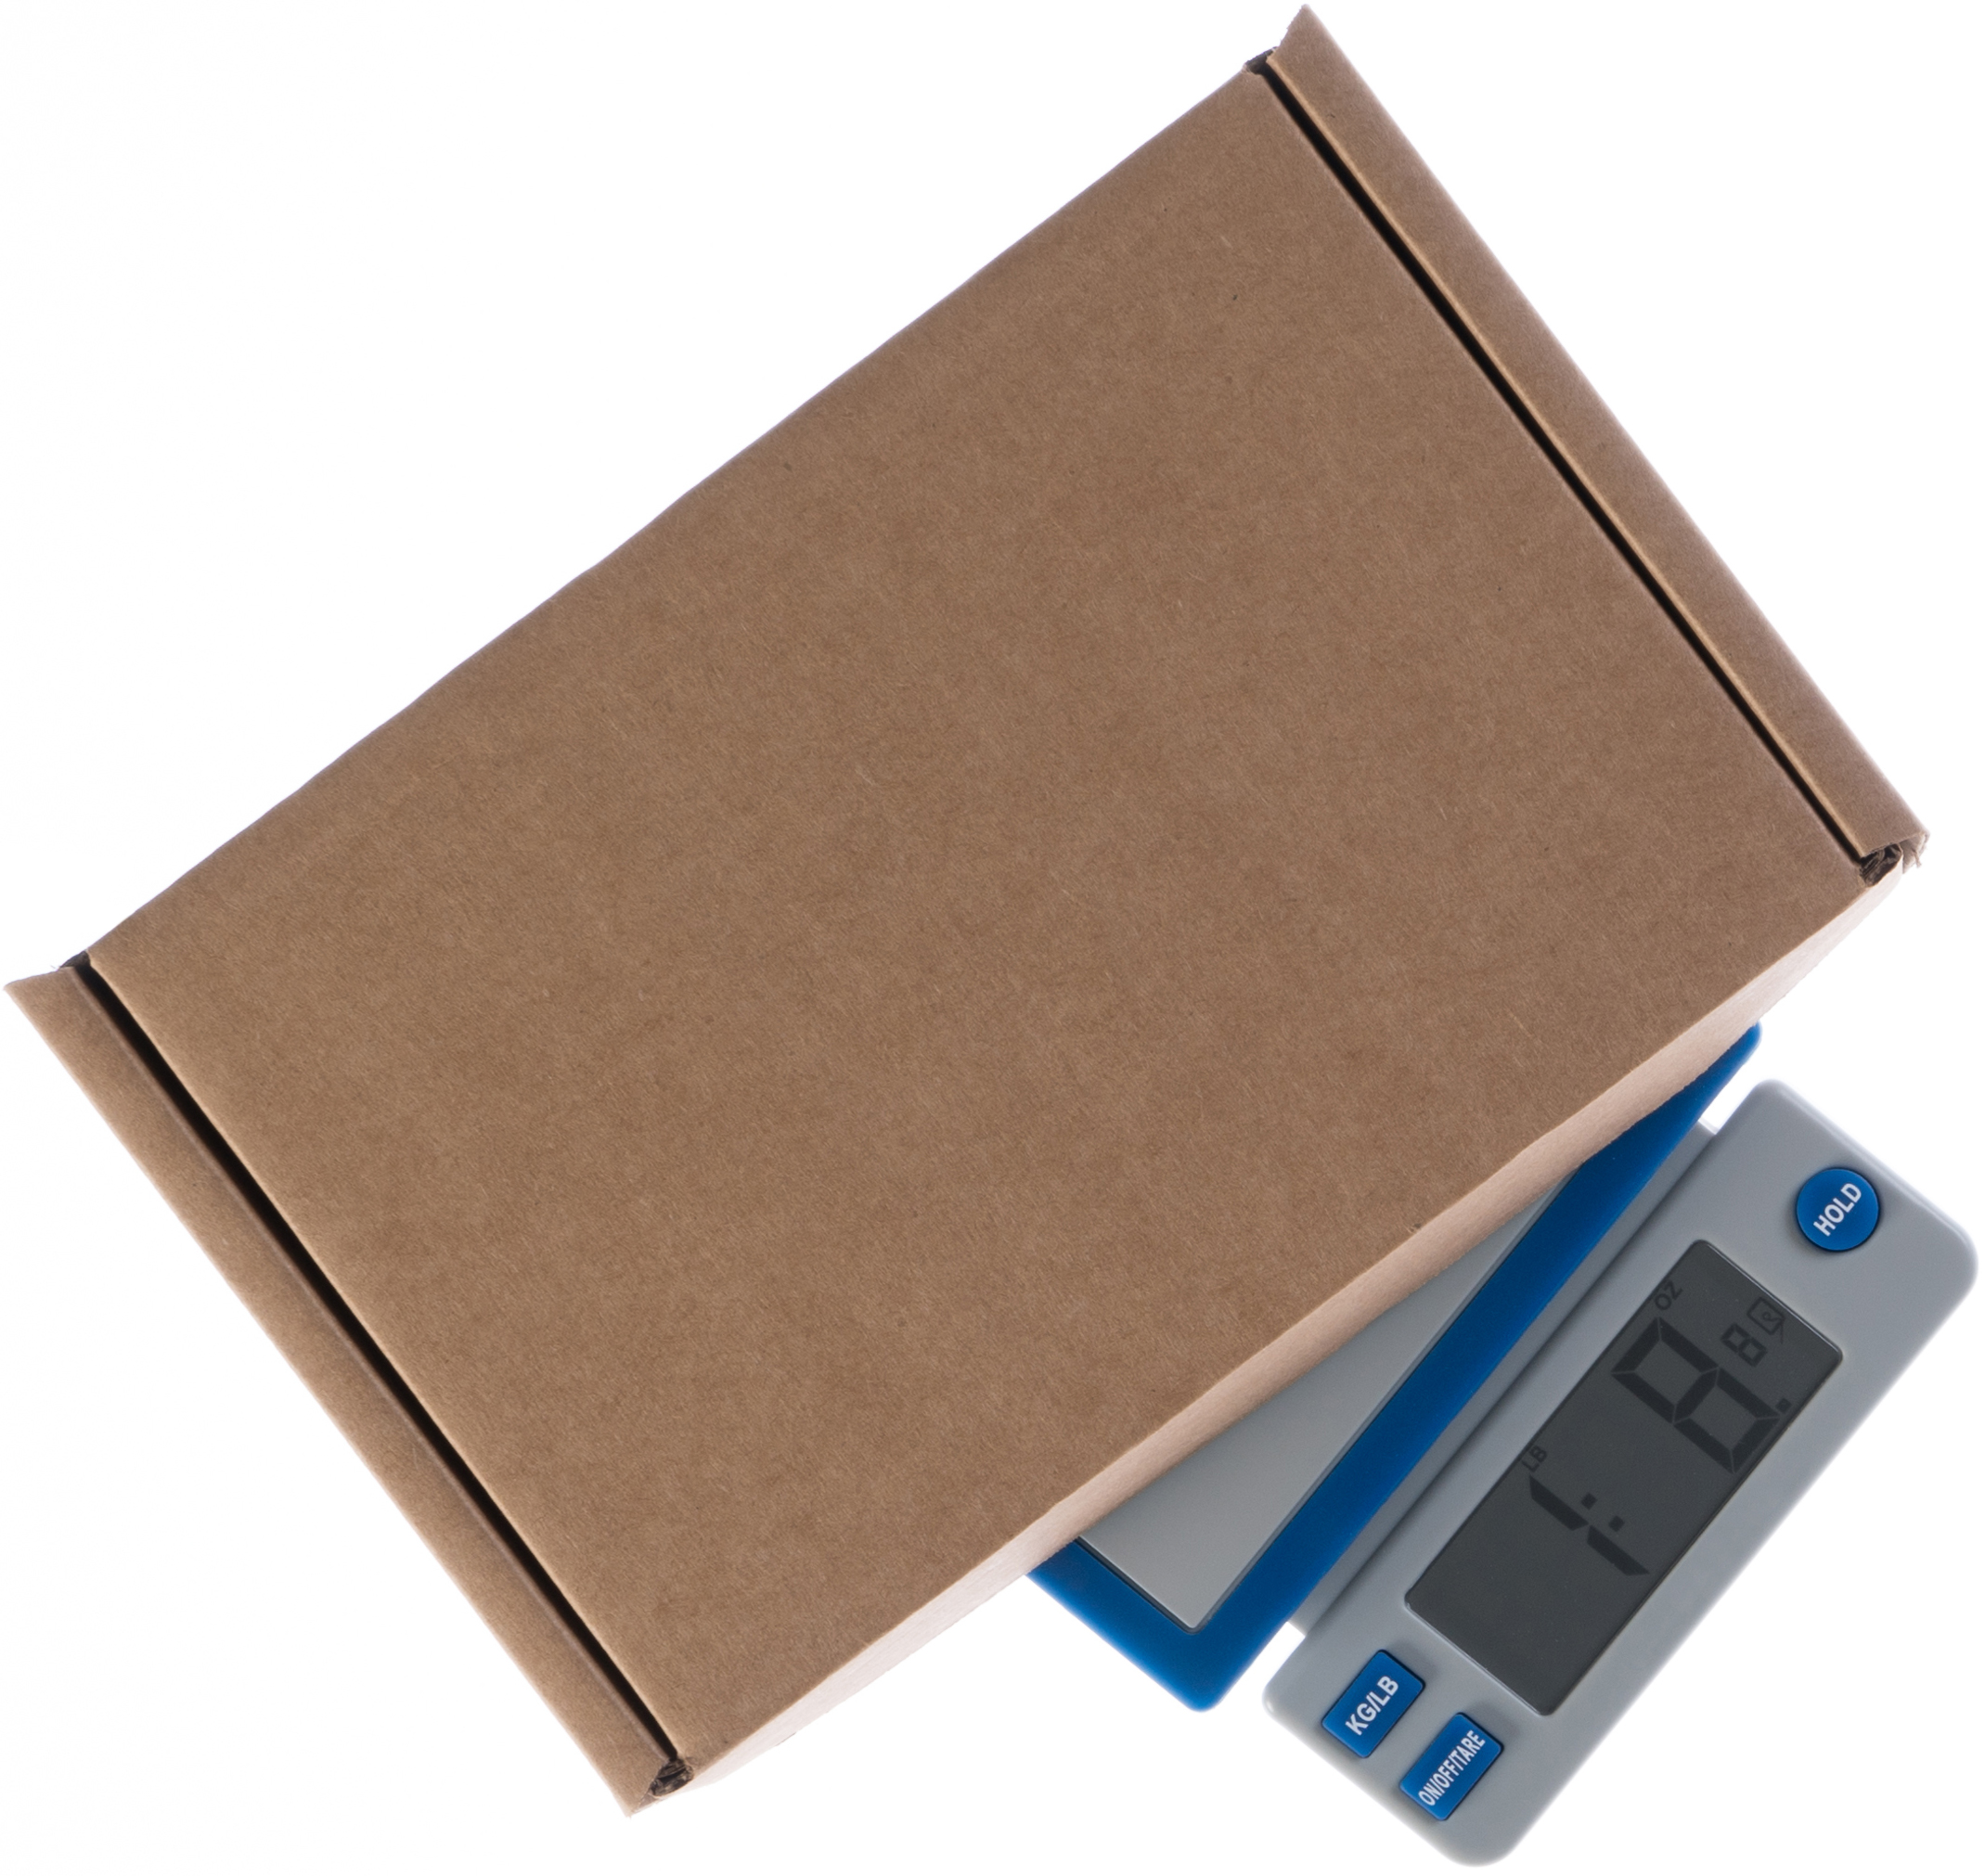 Postage scale with a cardboard box